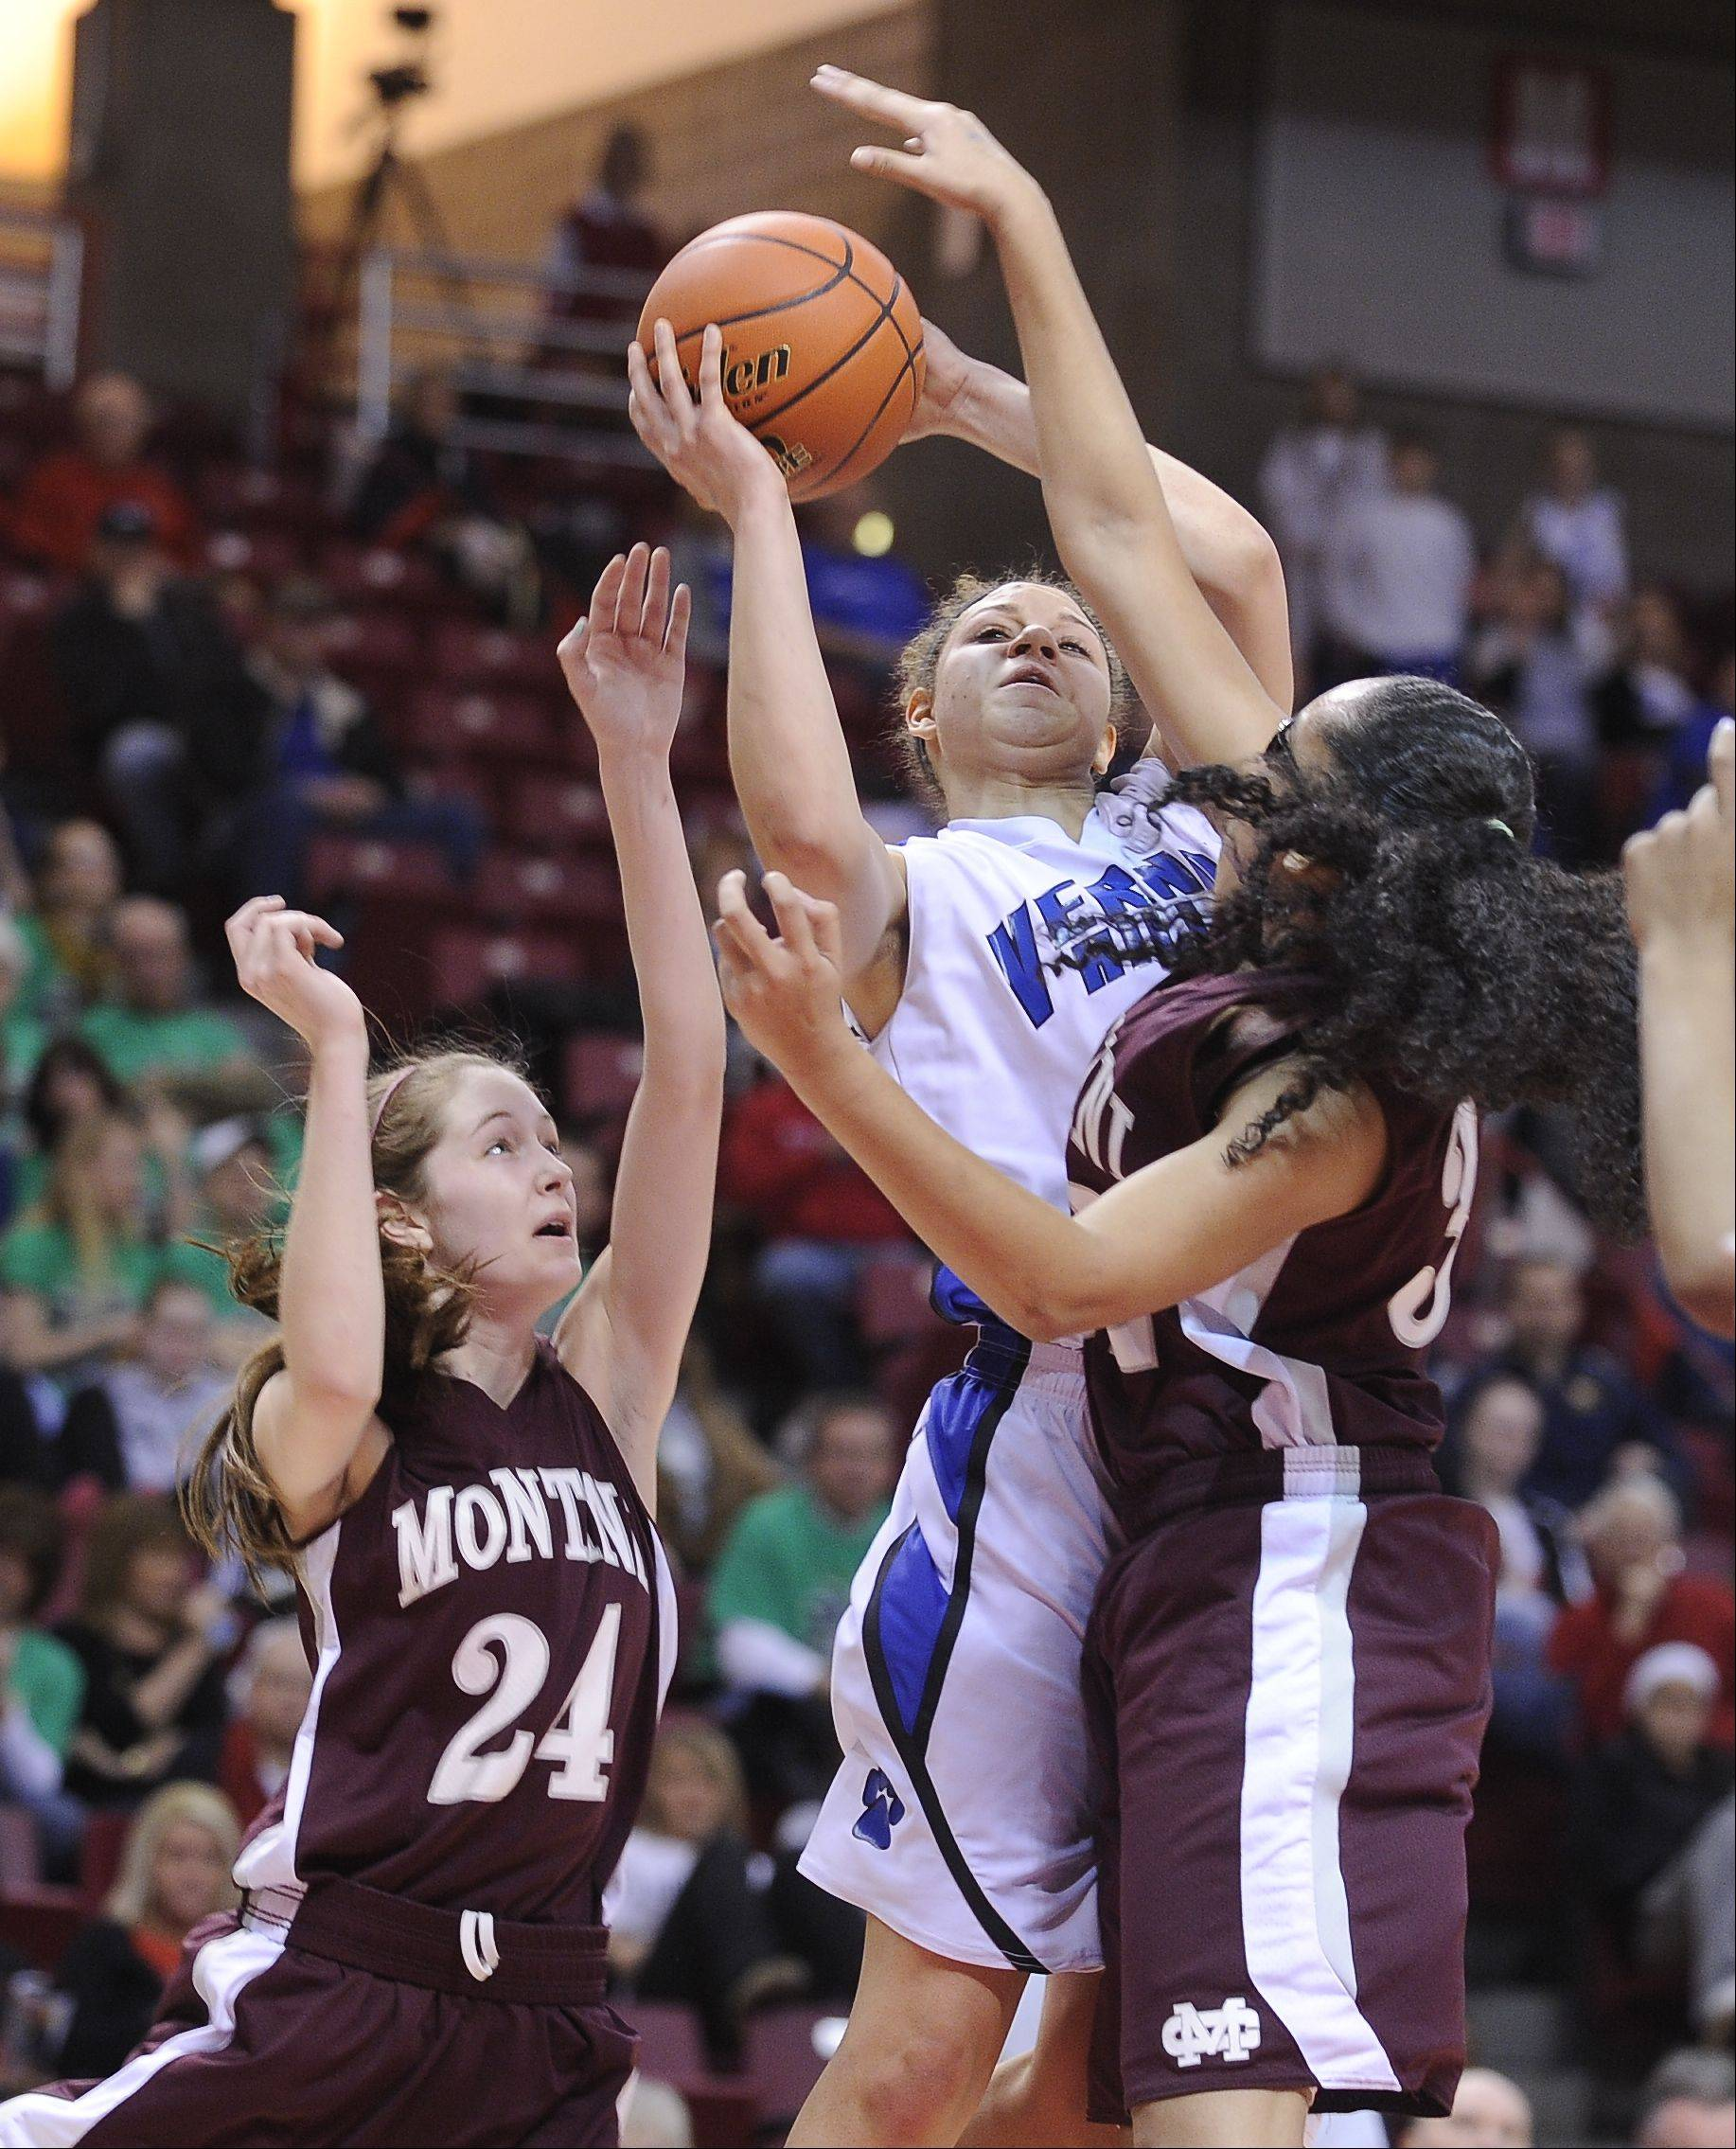 Montini's Kateri Stone (24) was limited this weekend by a high ankle sprain.